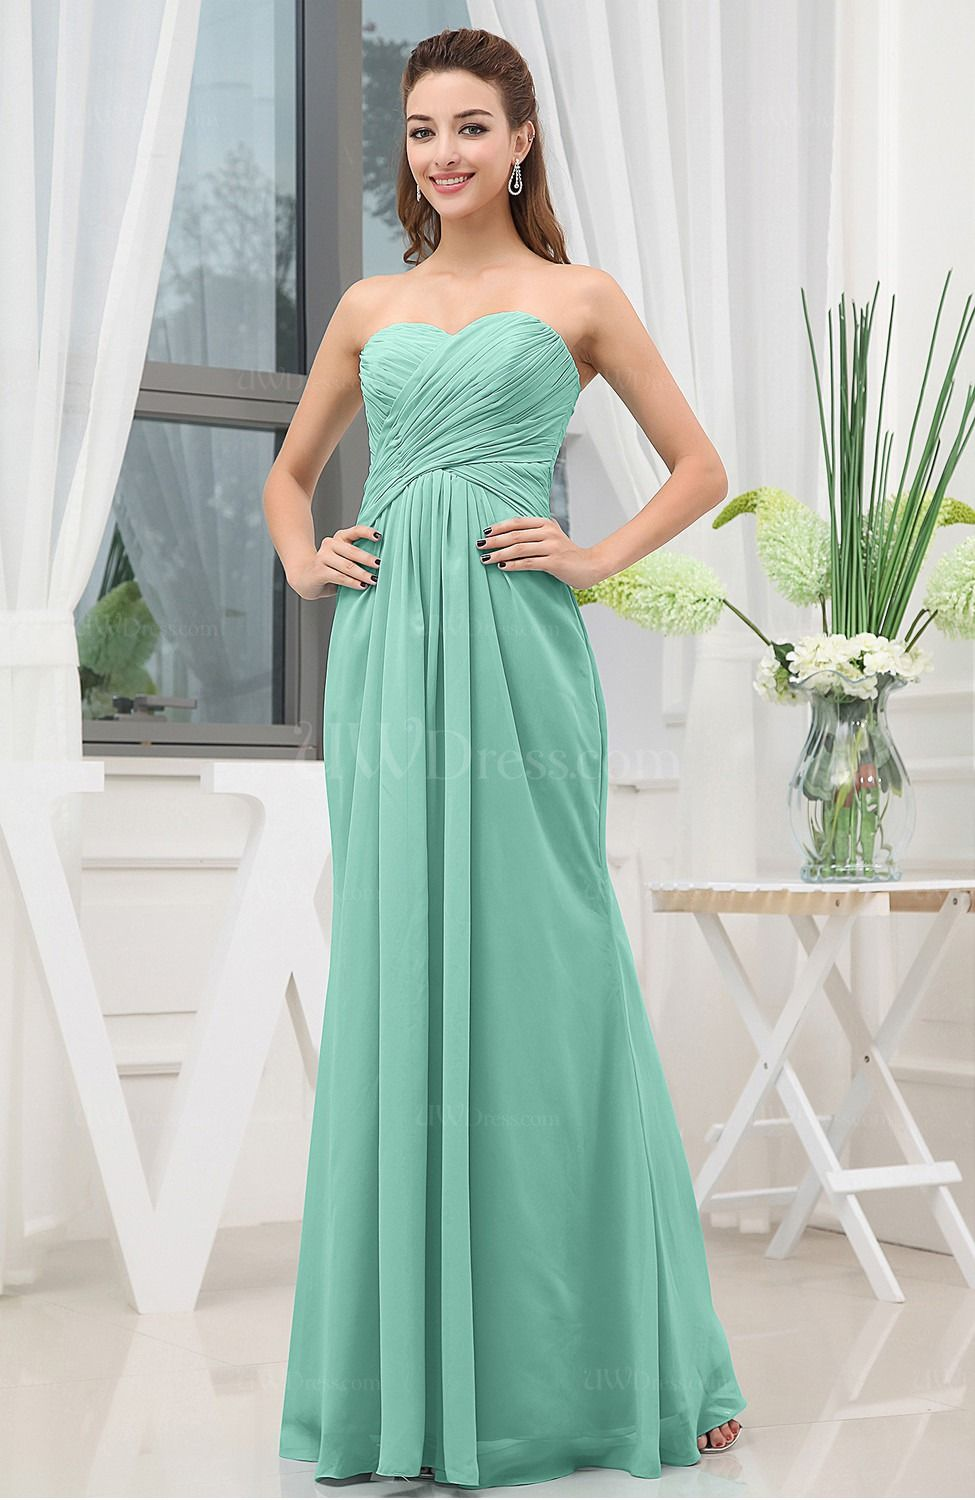 A Collection Of Beautiful Mint Green Bridesmaid Dresses